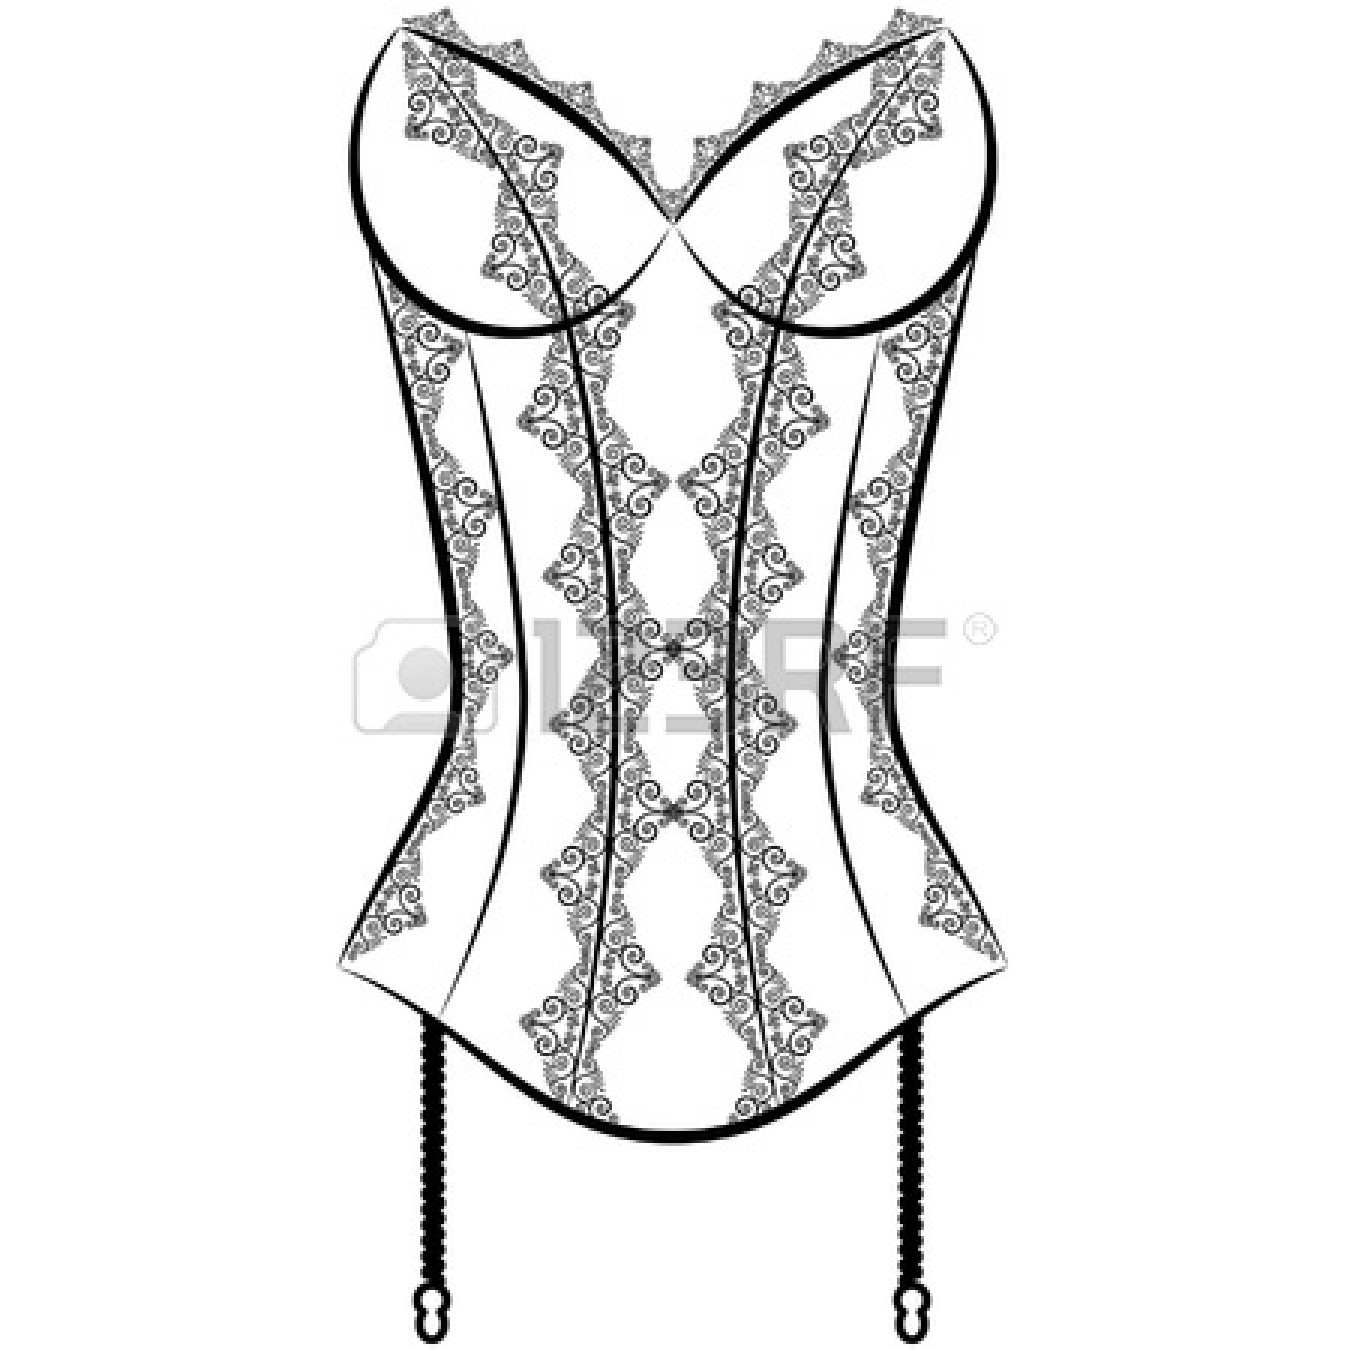 1350x1350 Underwear Clipart Black And White 12081072 Vintage Corset